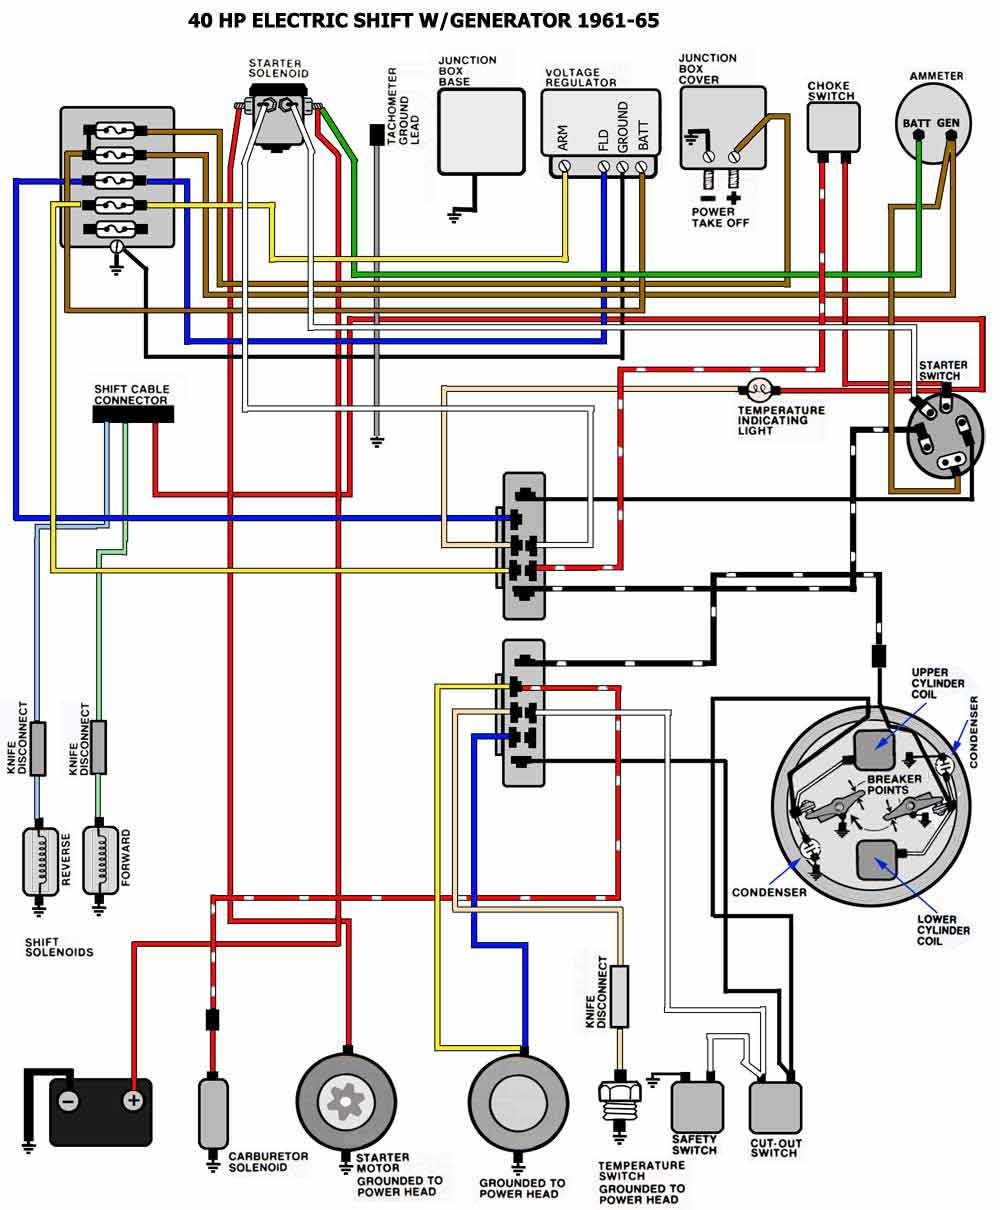 Mariner Outboard Wiring Harness Diagram - Wiring Diagram Liry on